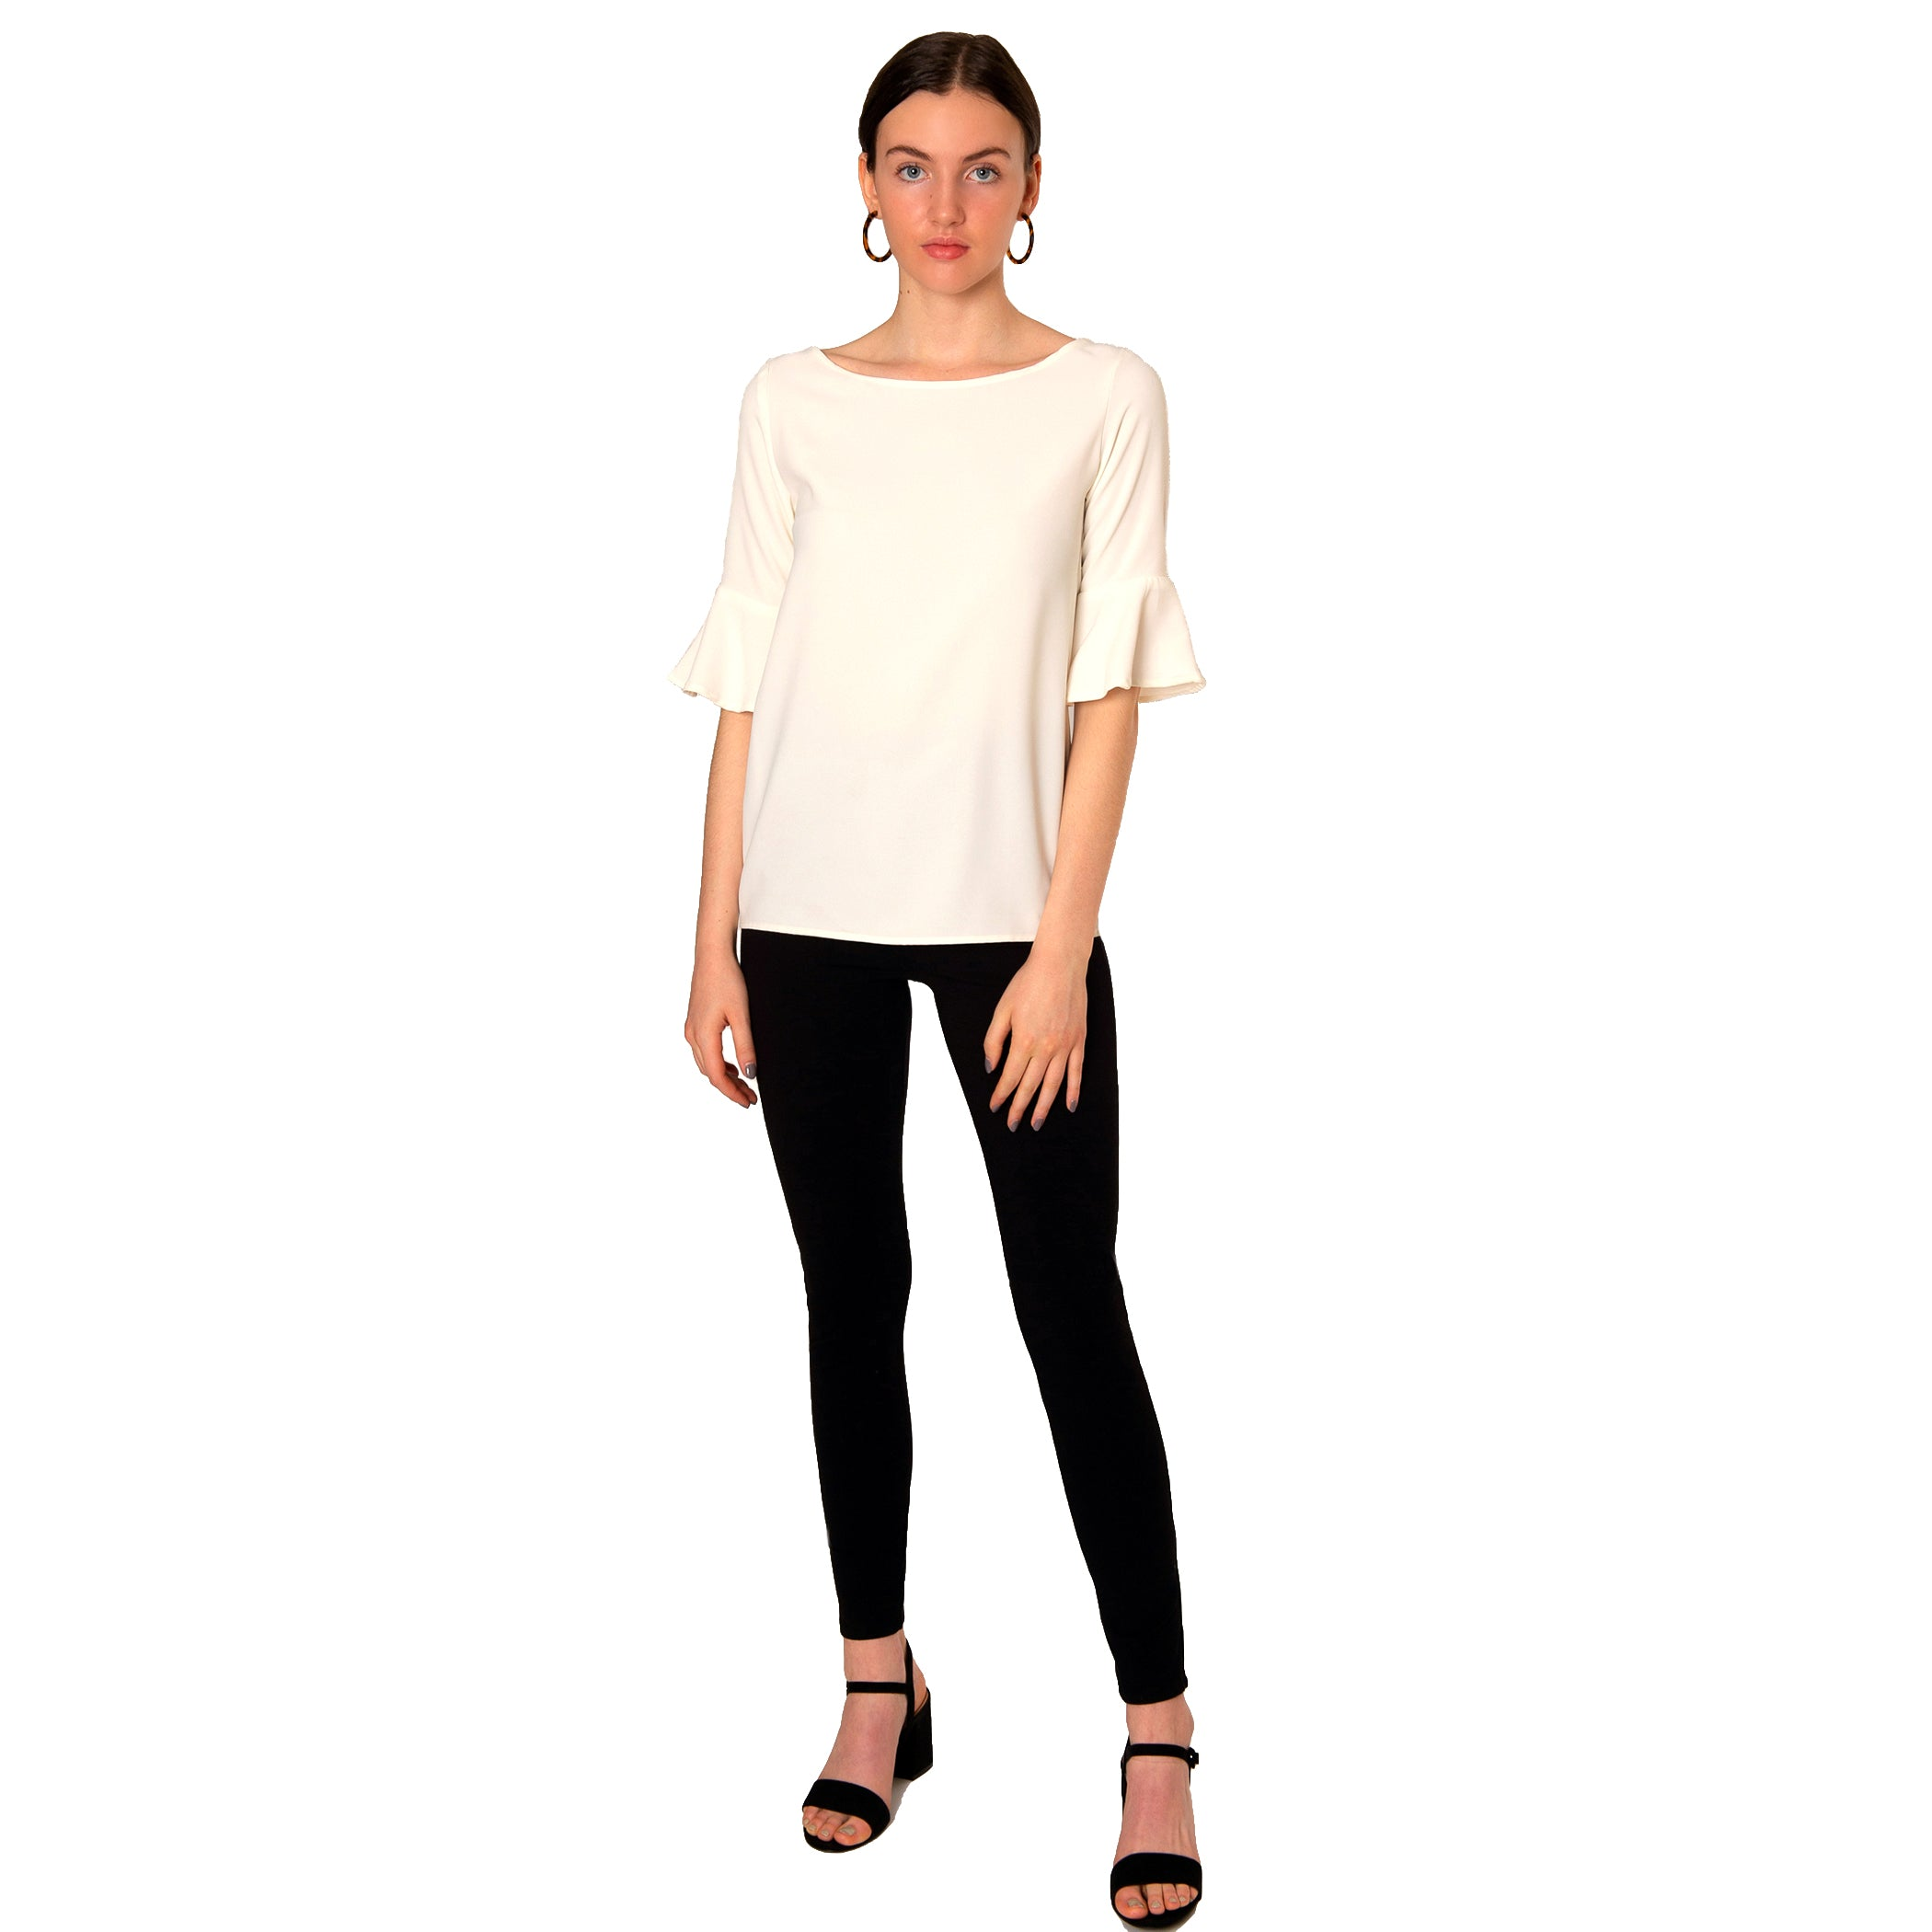 Caroline Blouse in Ivory - Elizabeth Ackerman New York